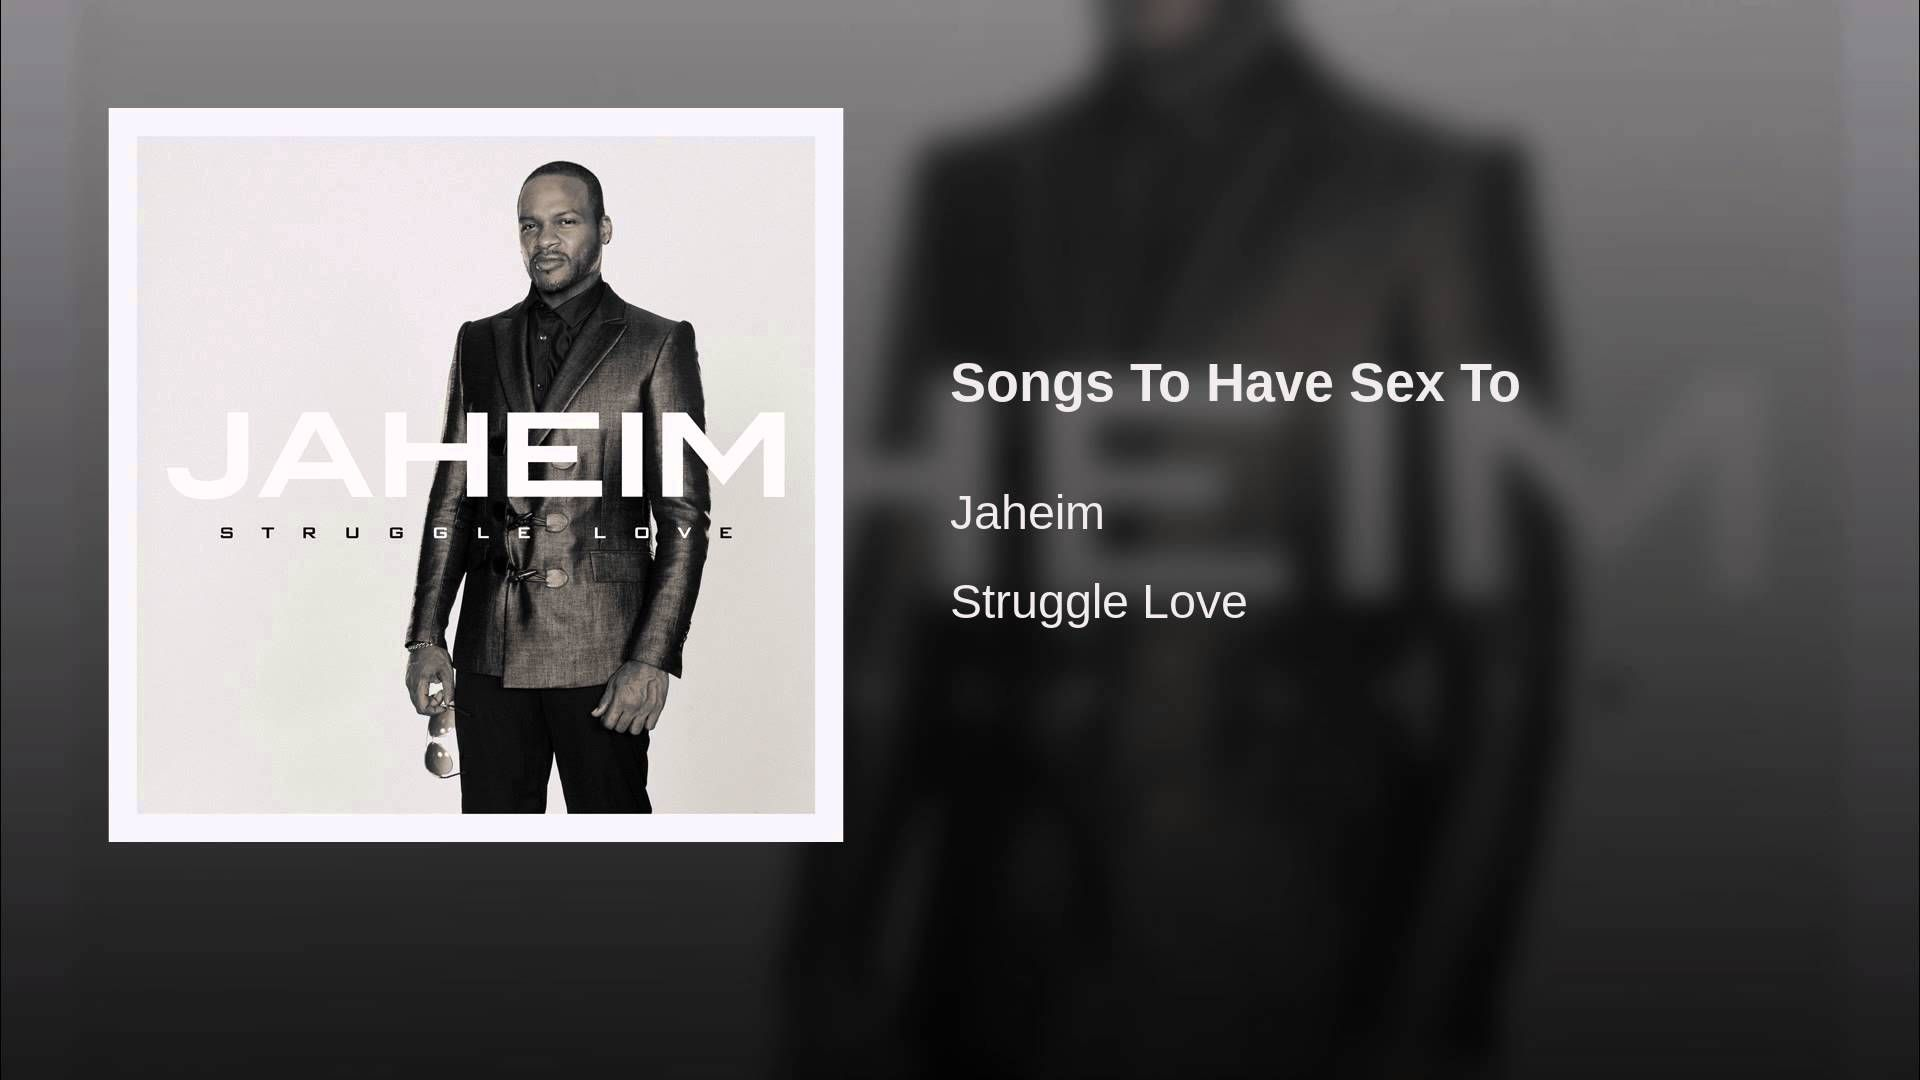 R&b songs to have sex to